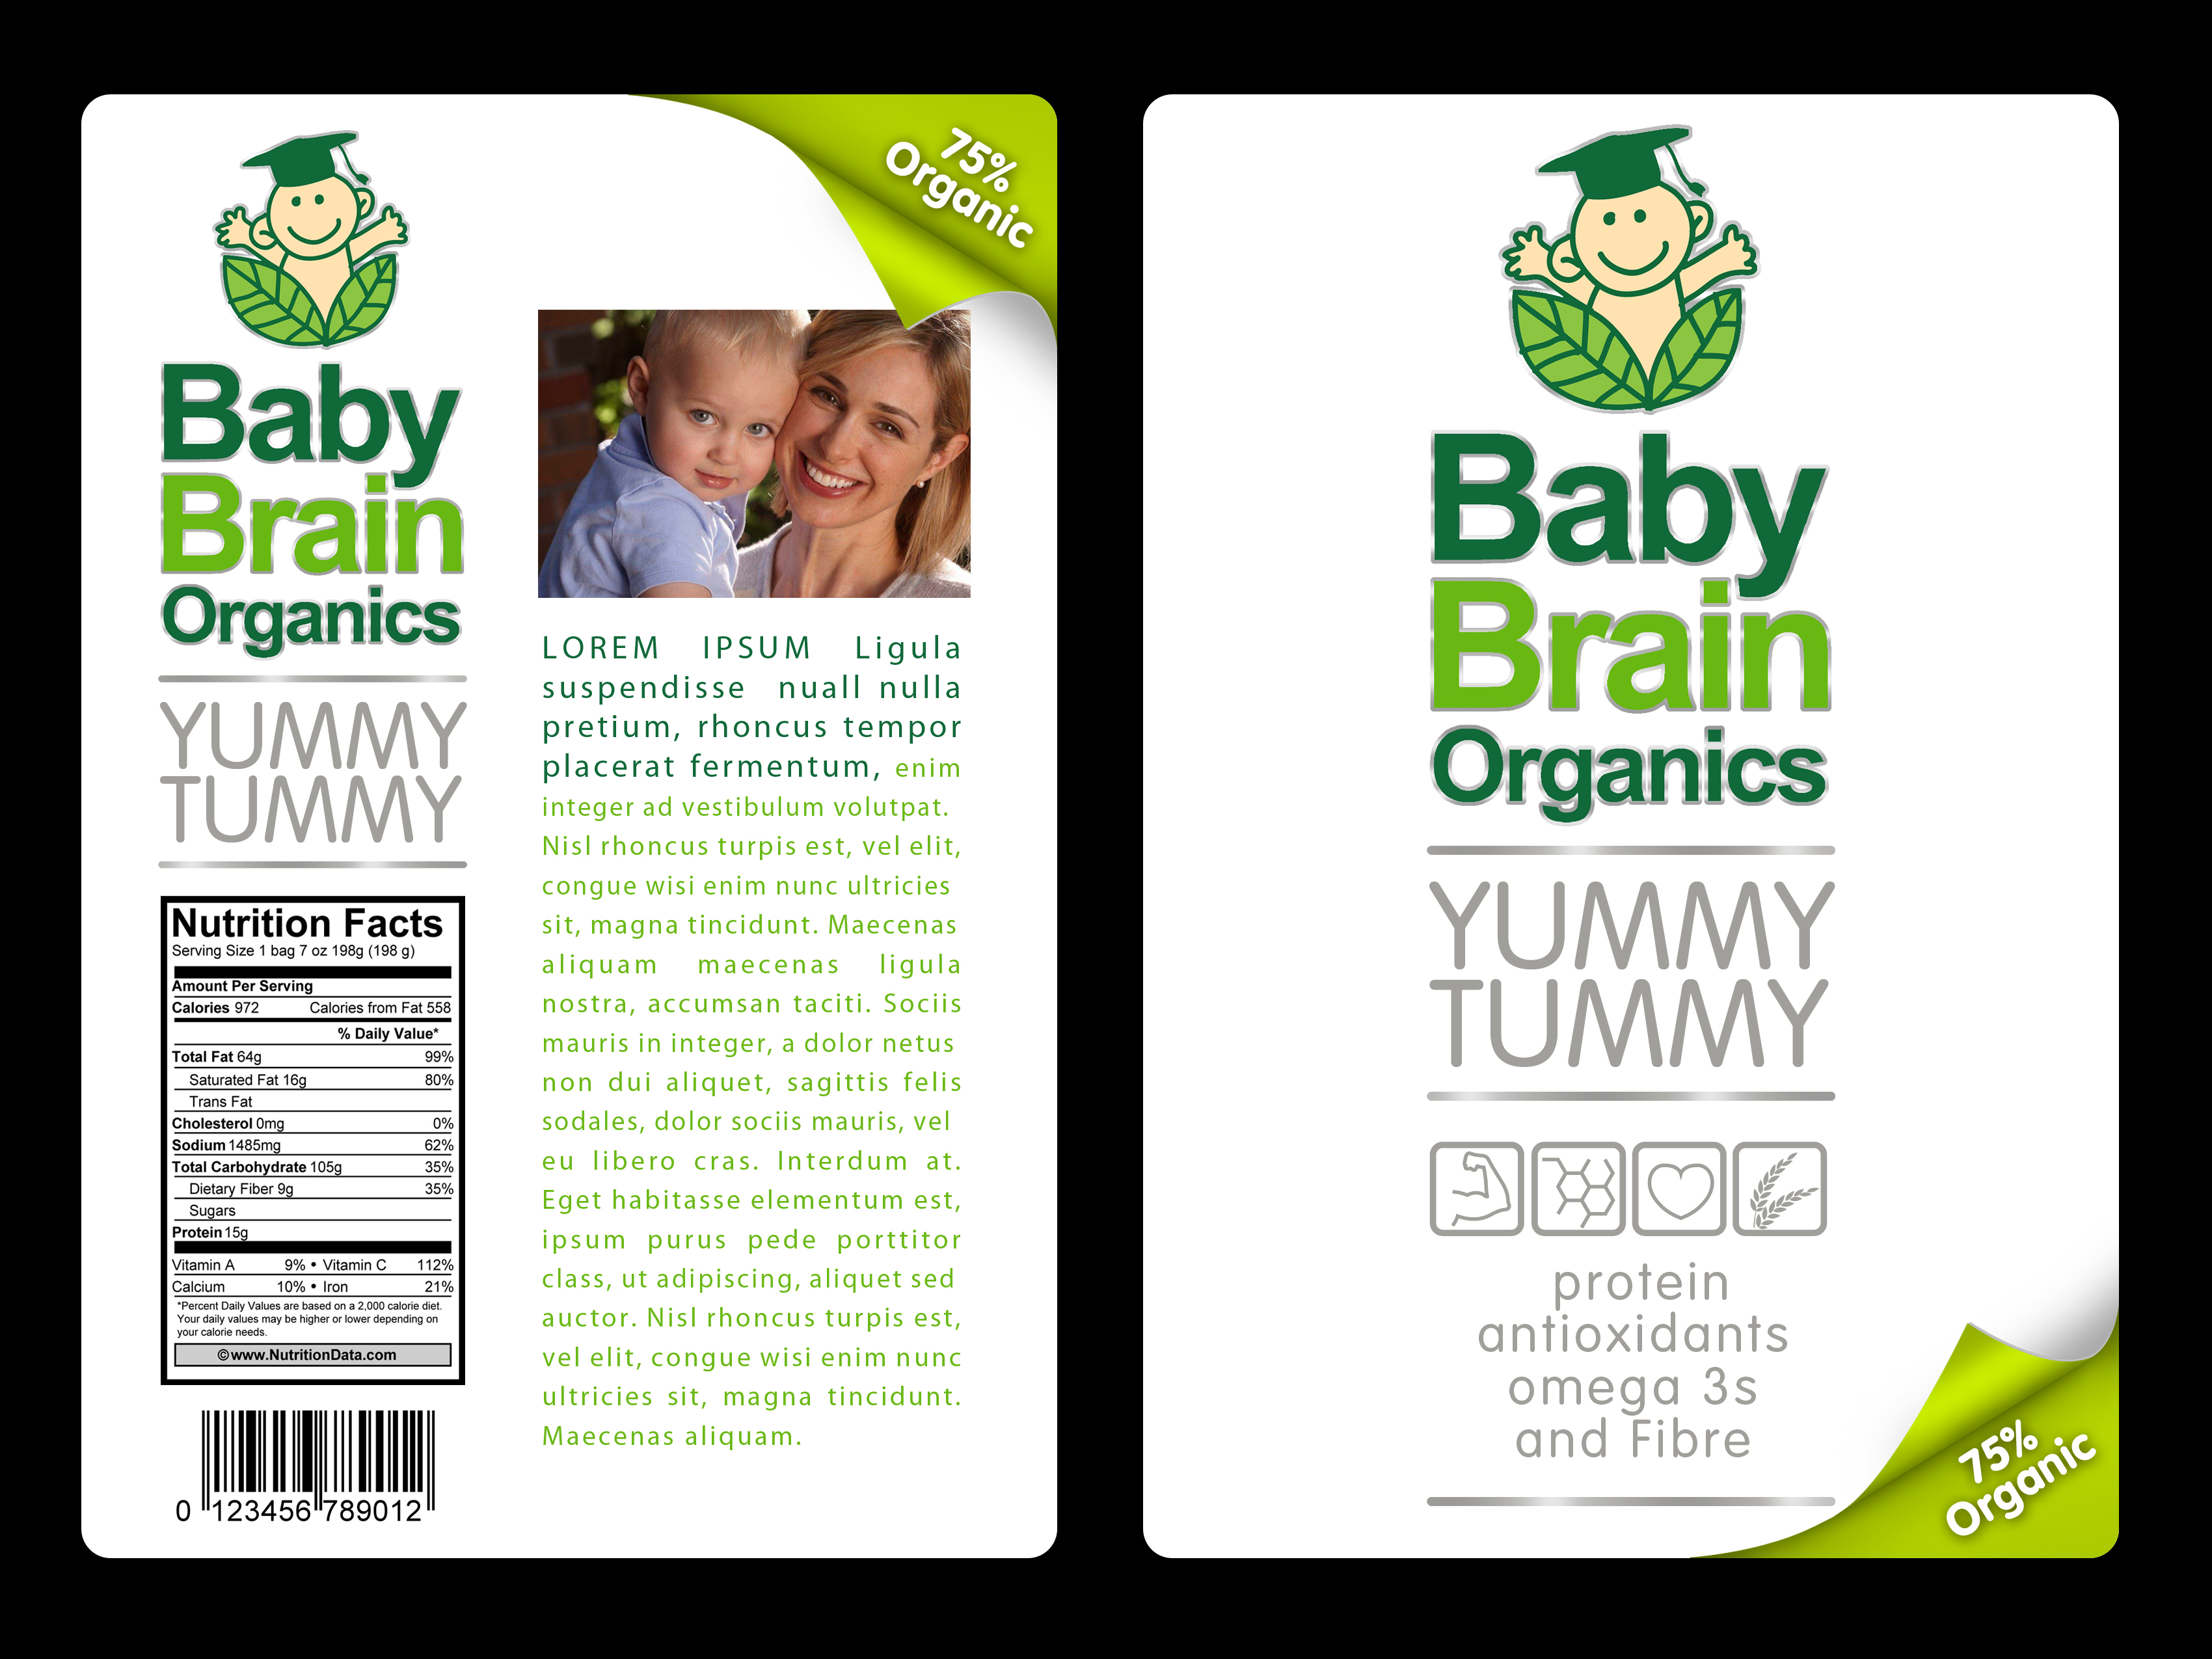 Packaging Design by moidgreat - Entry No. 76 in the Packaging Design Contest Baby Brain Organics Packaging Design.